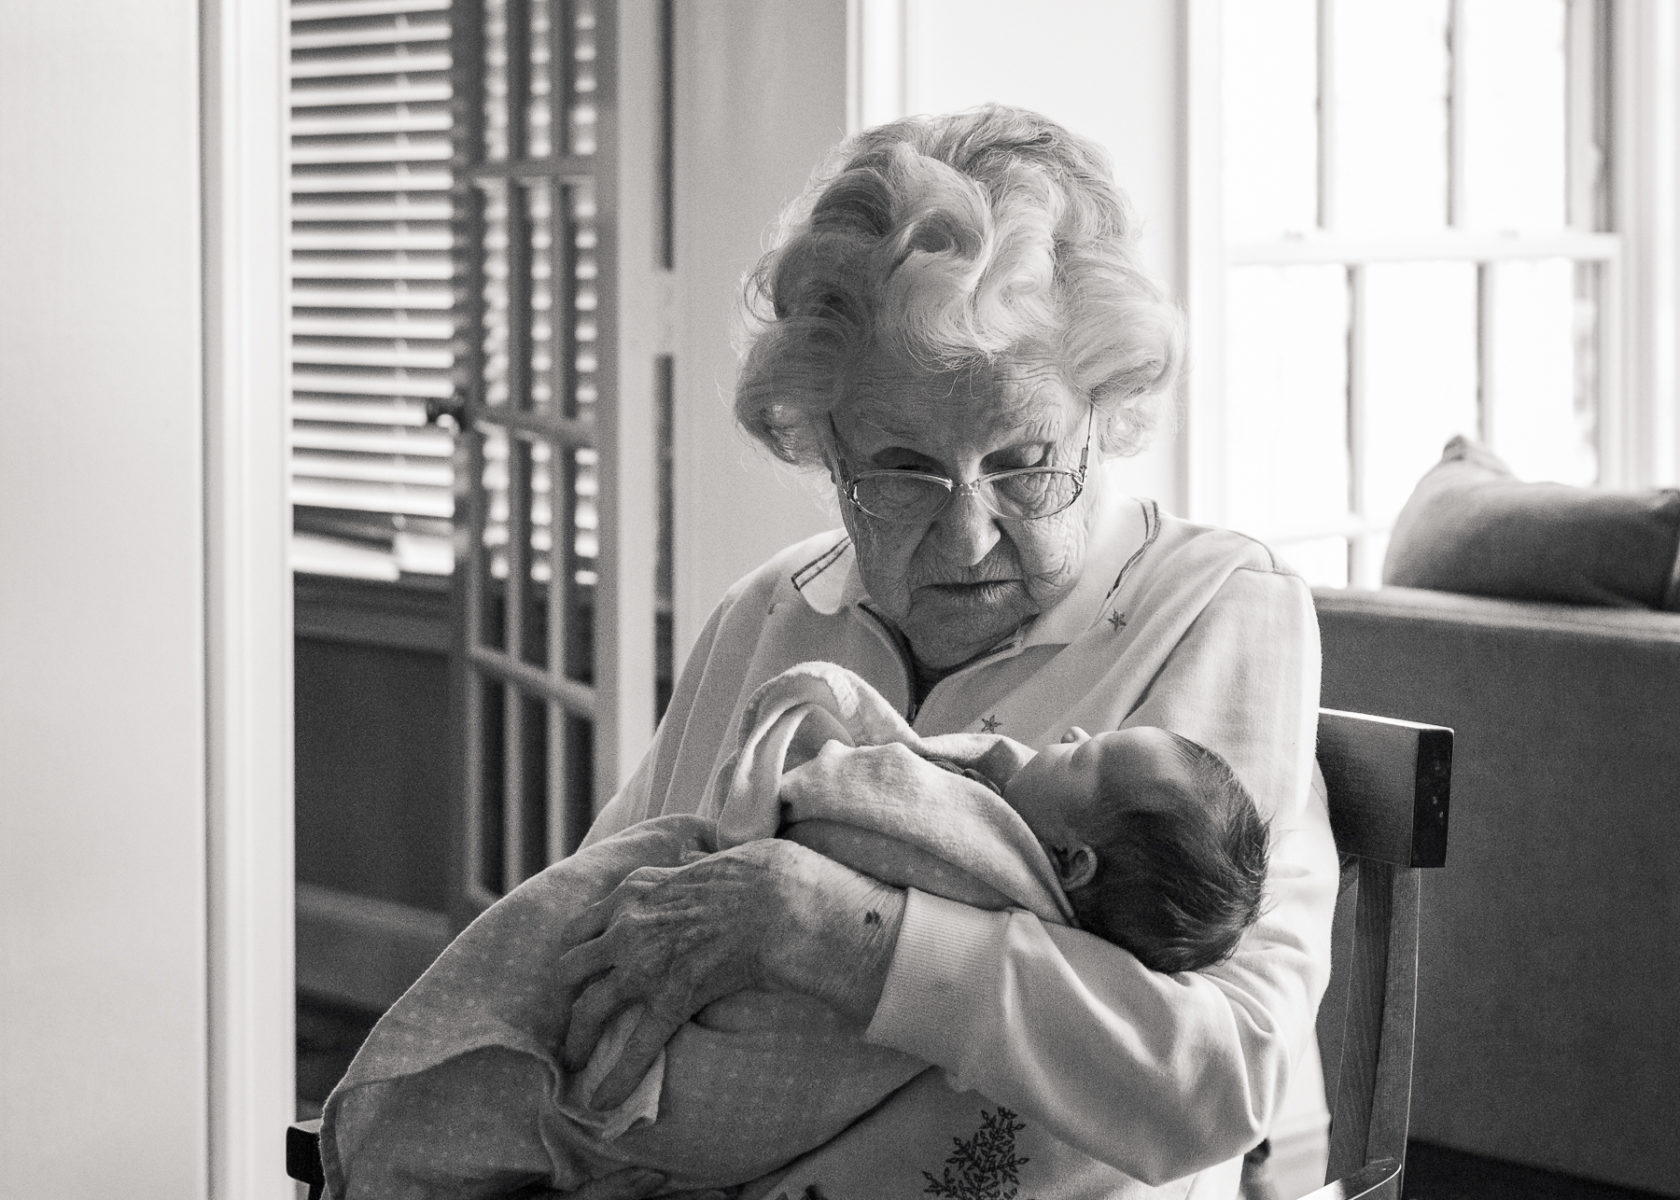 Great grandmother holding newborn great granddaughter